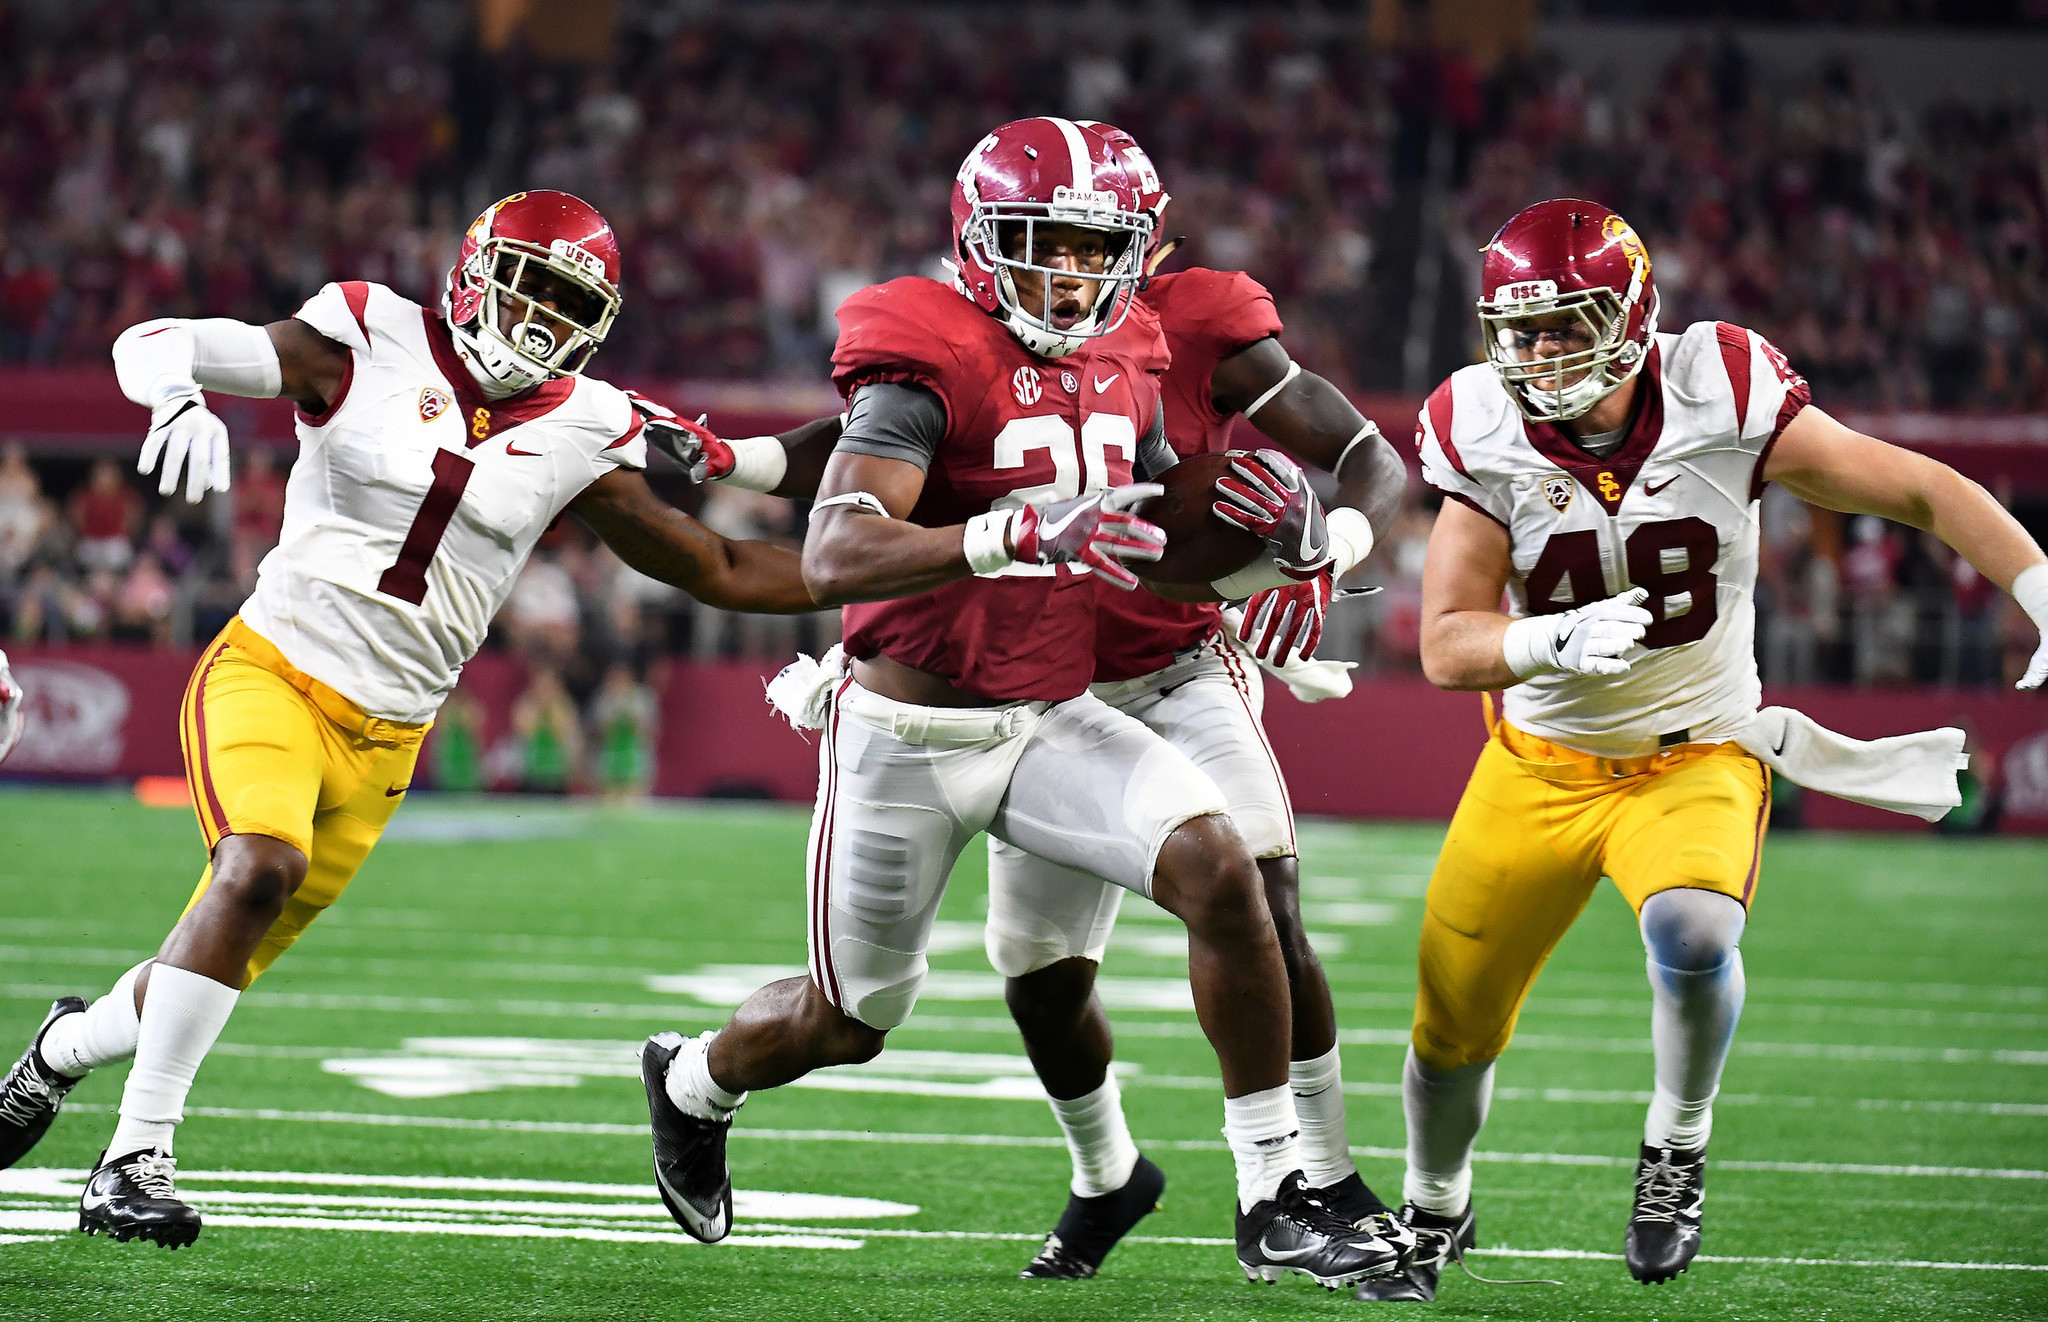 Yes, maybe we'd get a Bama-USC rematch in the 1 vs. 8 game, and it would likely be closer.